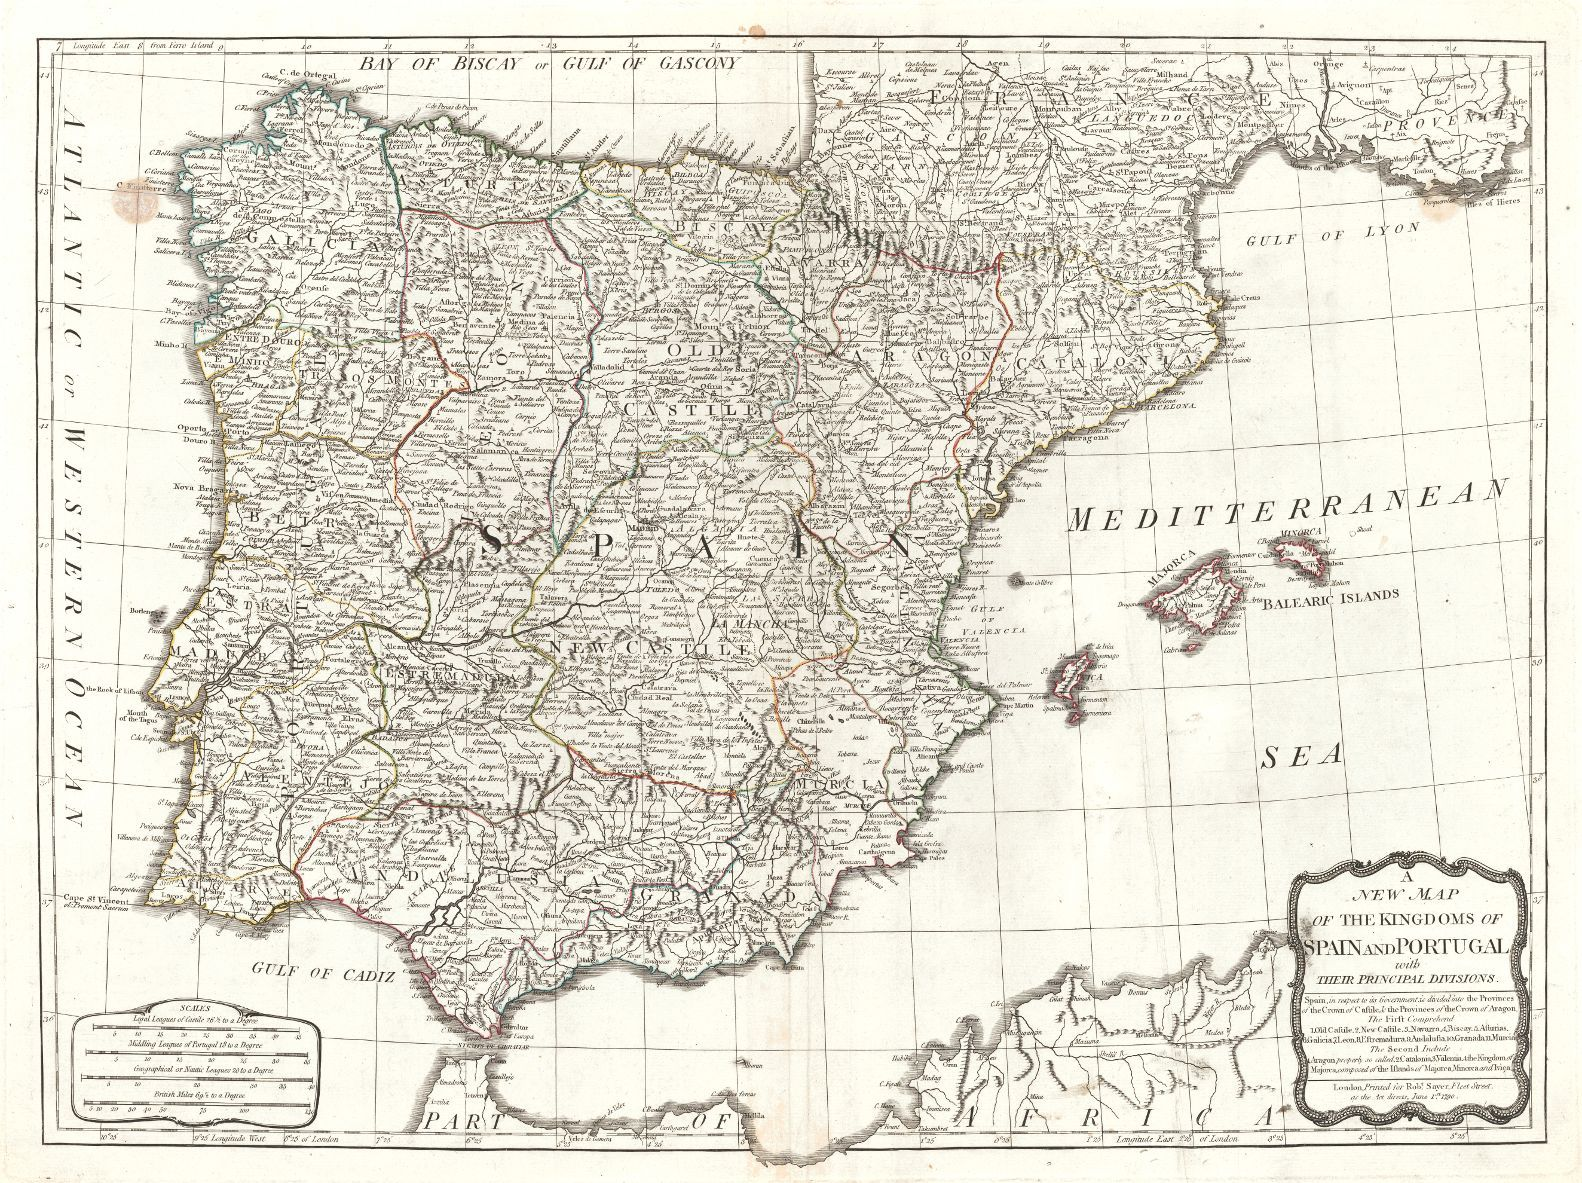 A New Map of the Kingdoms of Spain and Portugal with their